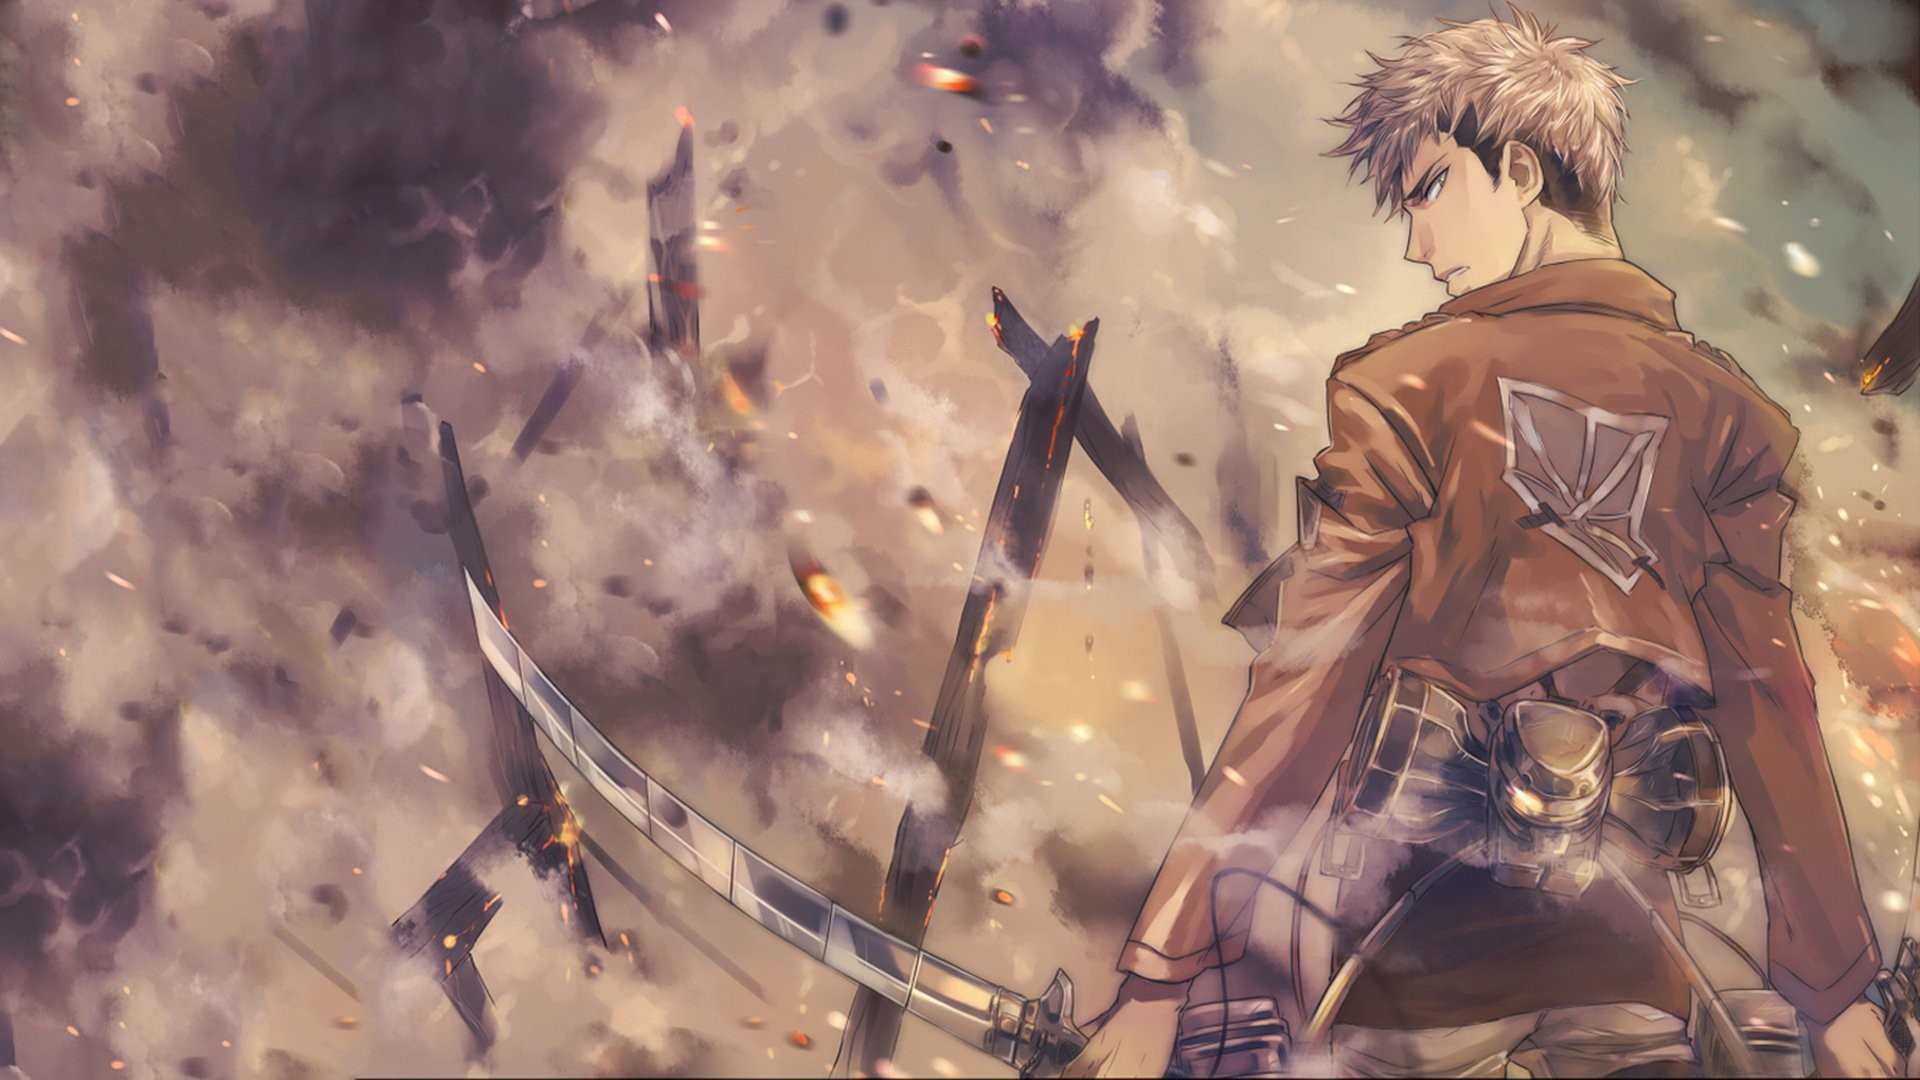 Attack On Titan Wallpaper Download Free Beautiful High